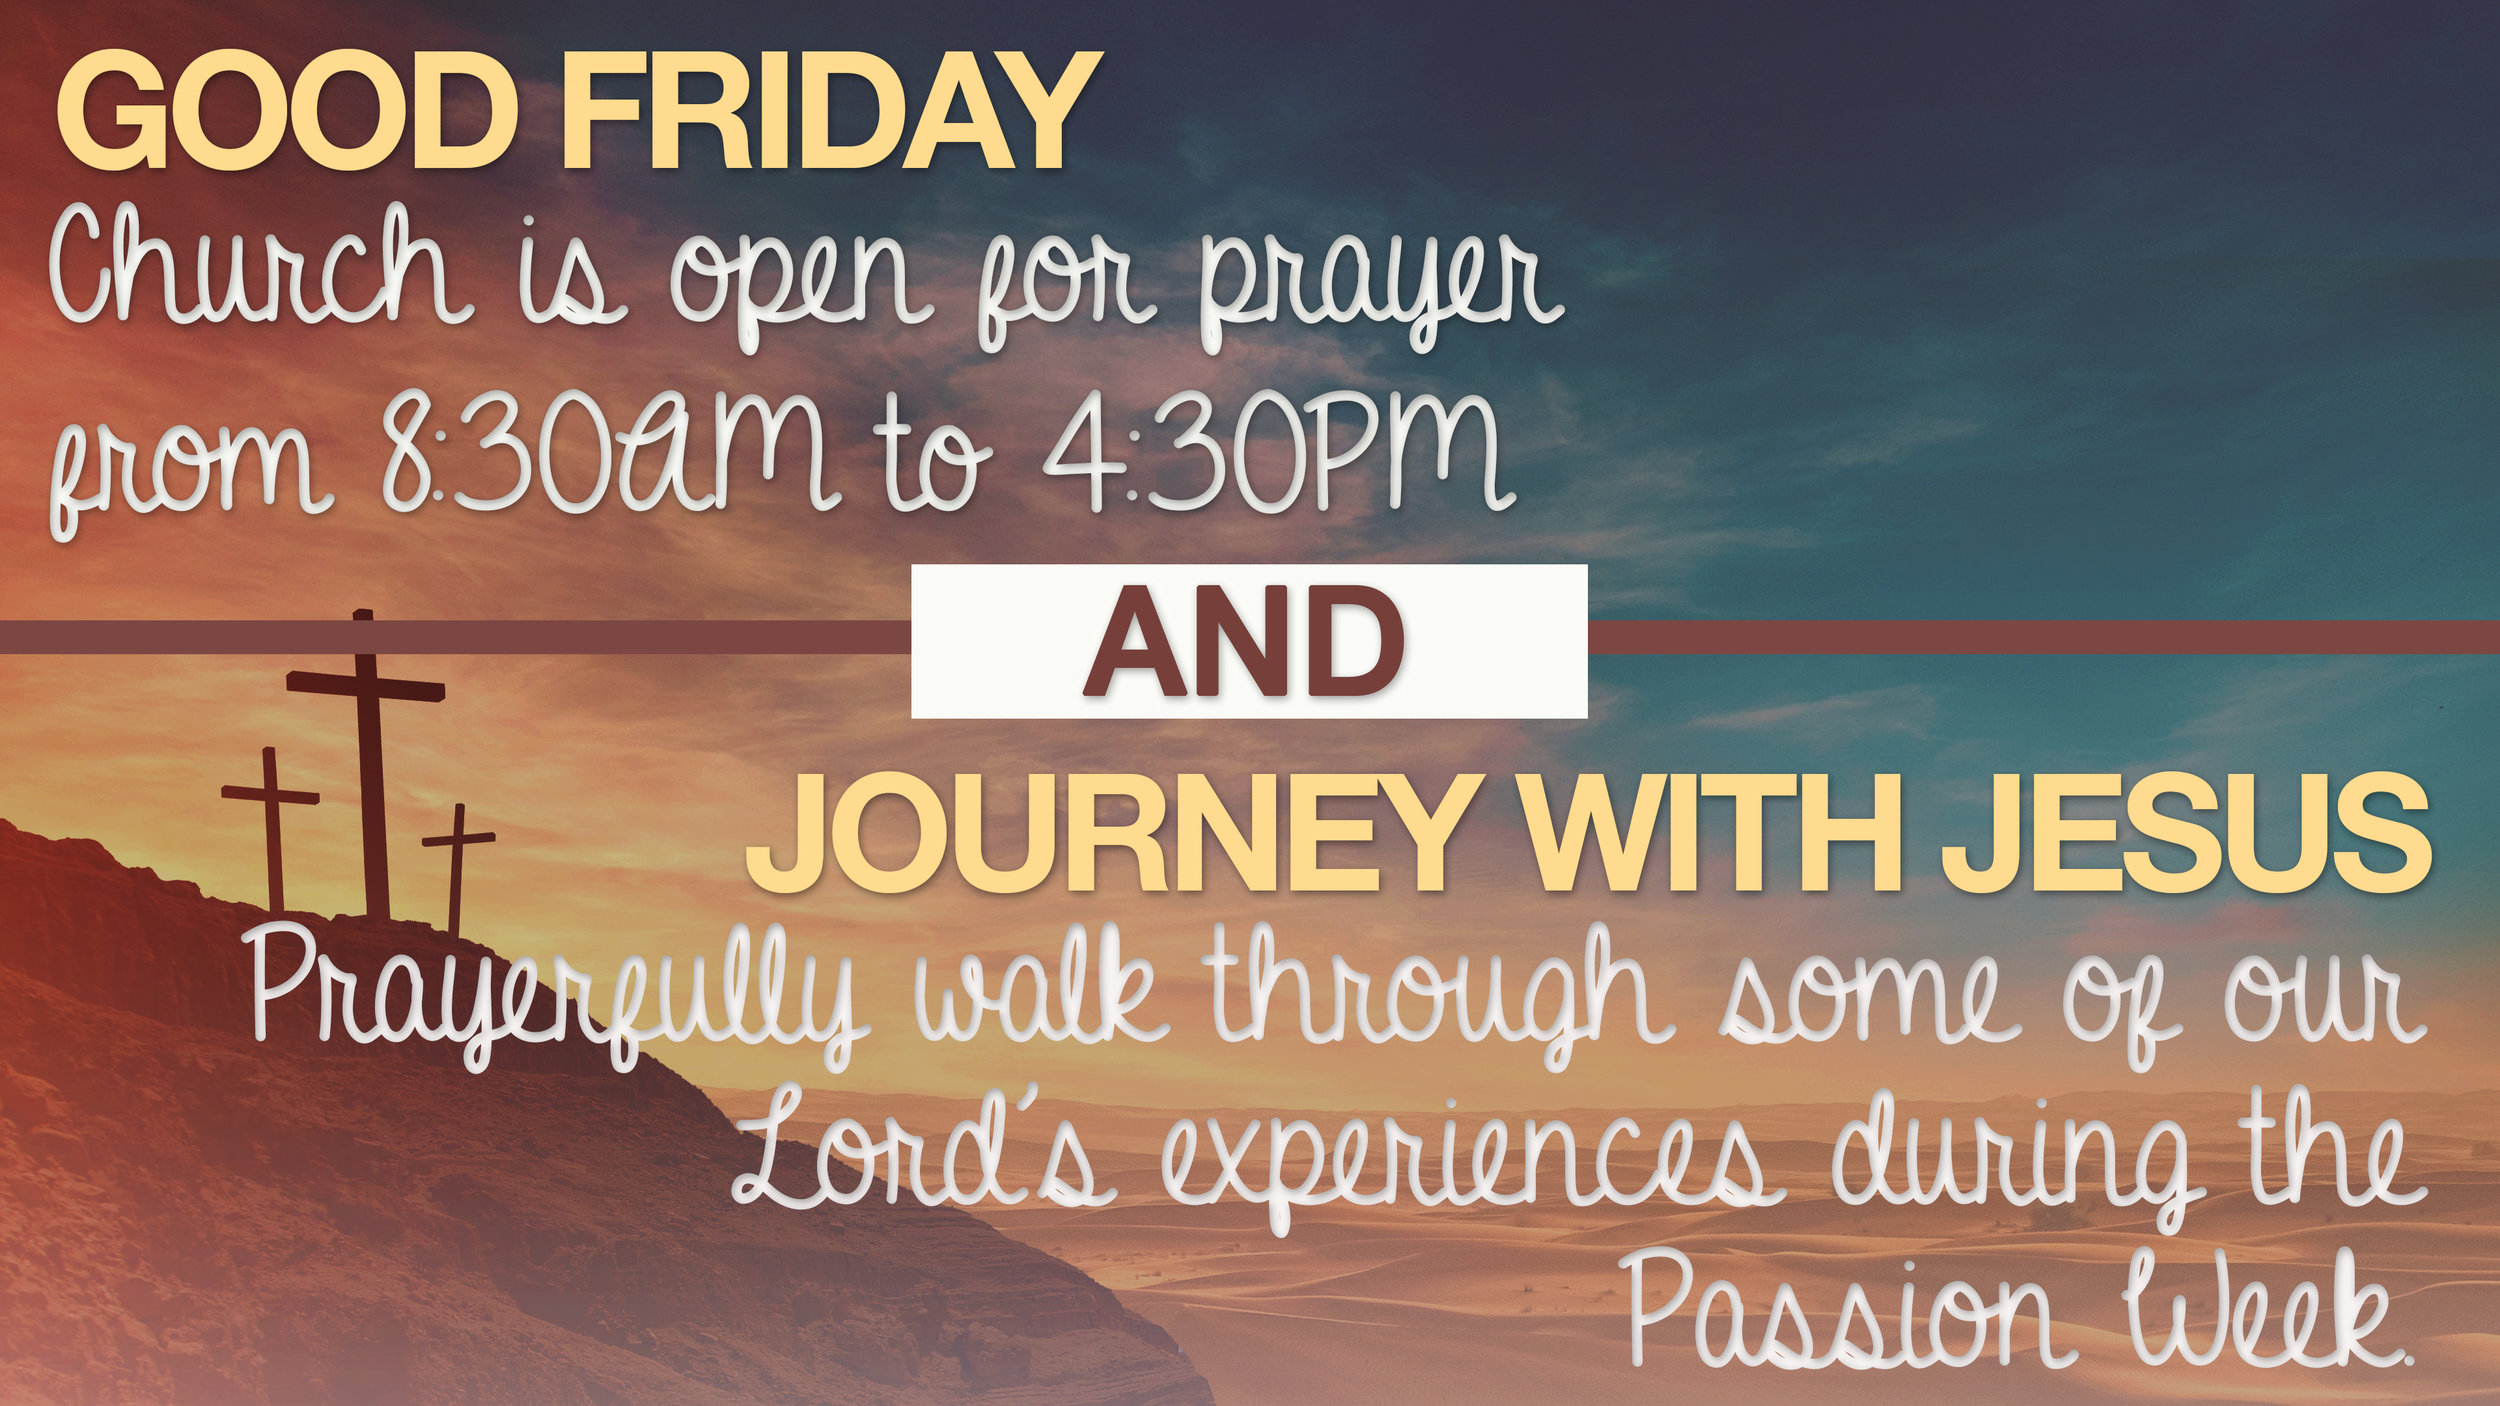 Good Friday and Journey with Jesus.jpg